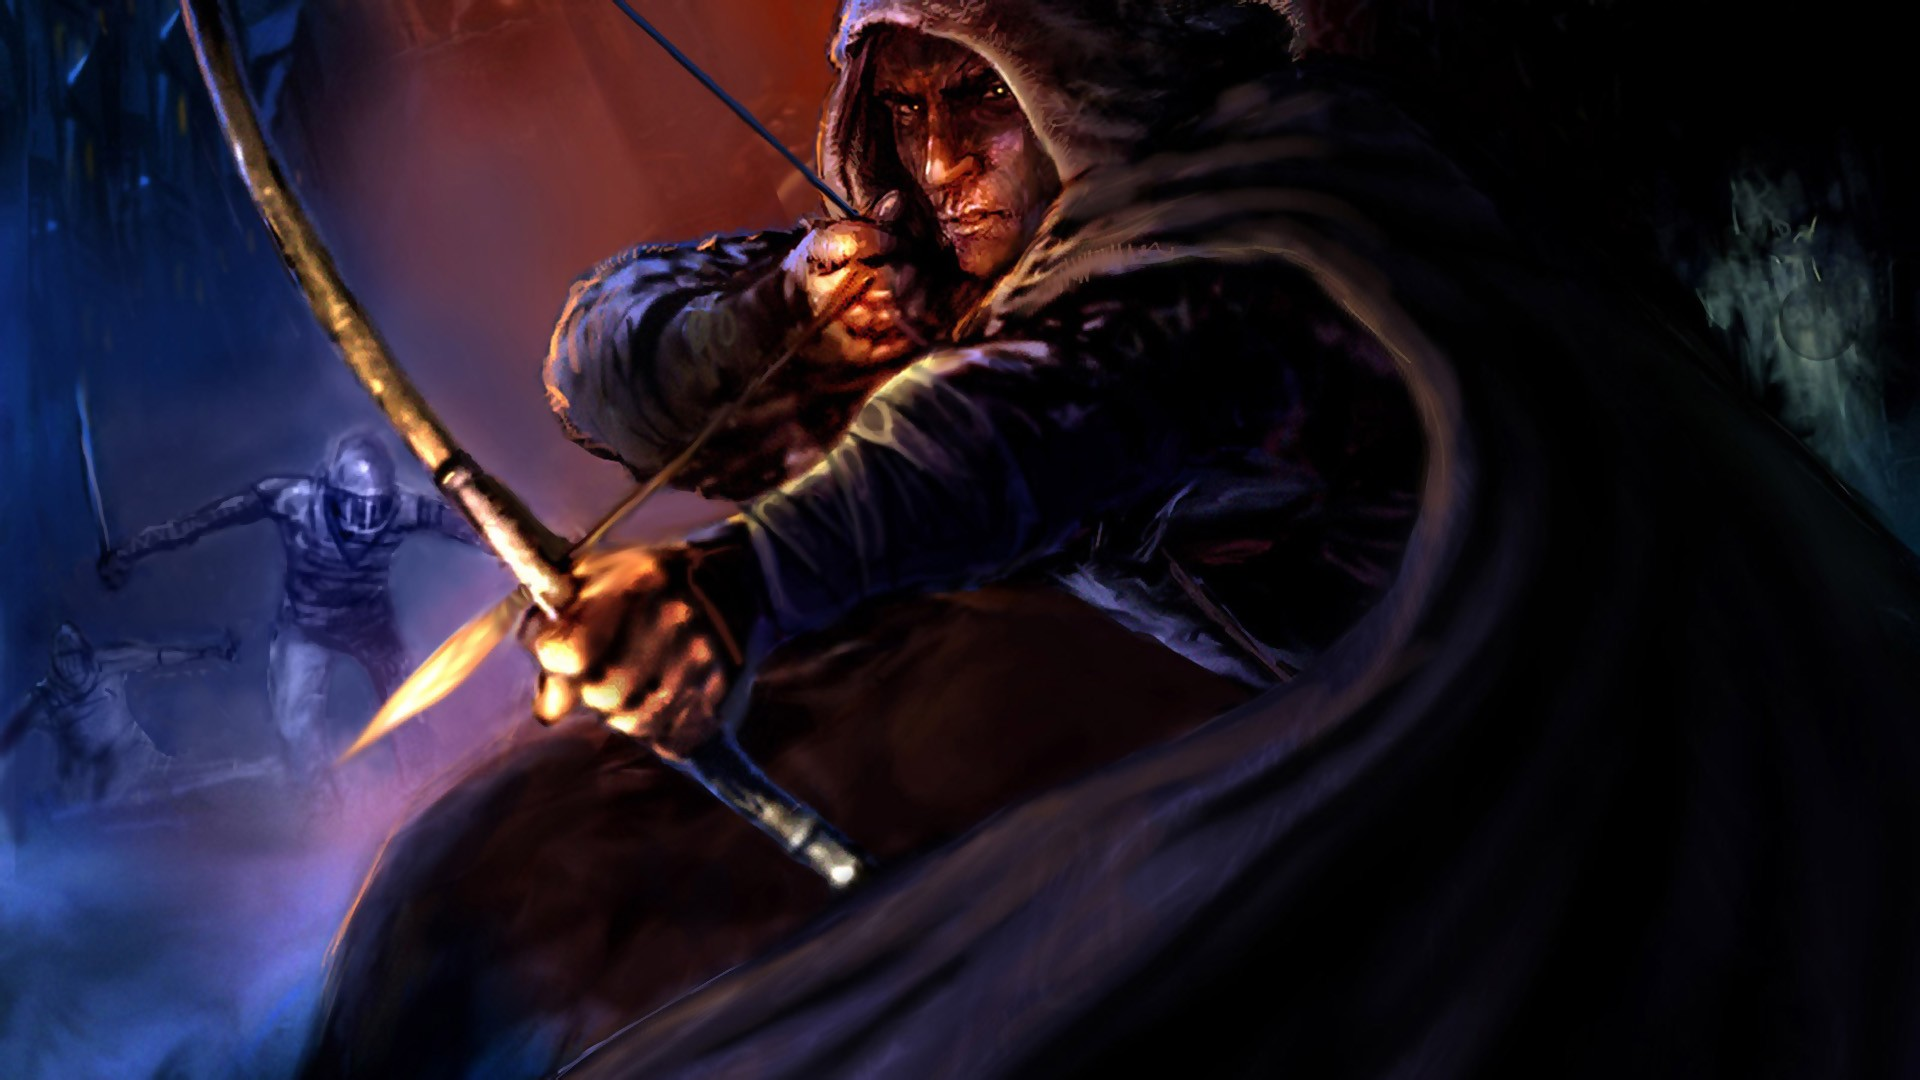 Thief II The Metal Age Details   LaunchBox Games Database 1920x1080